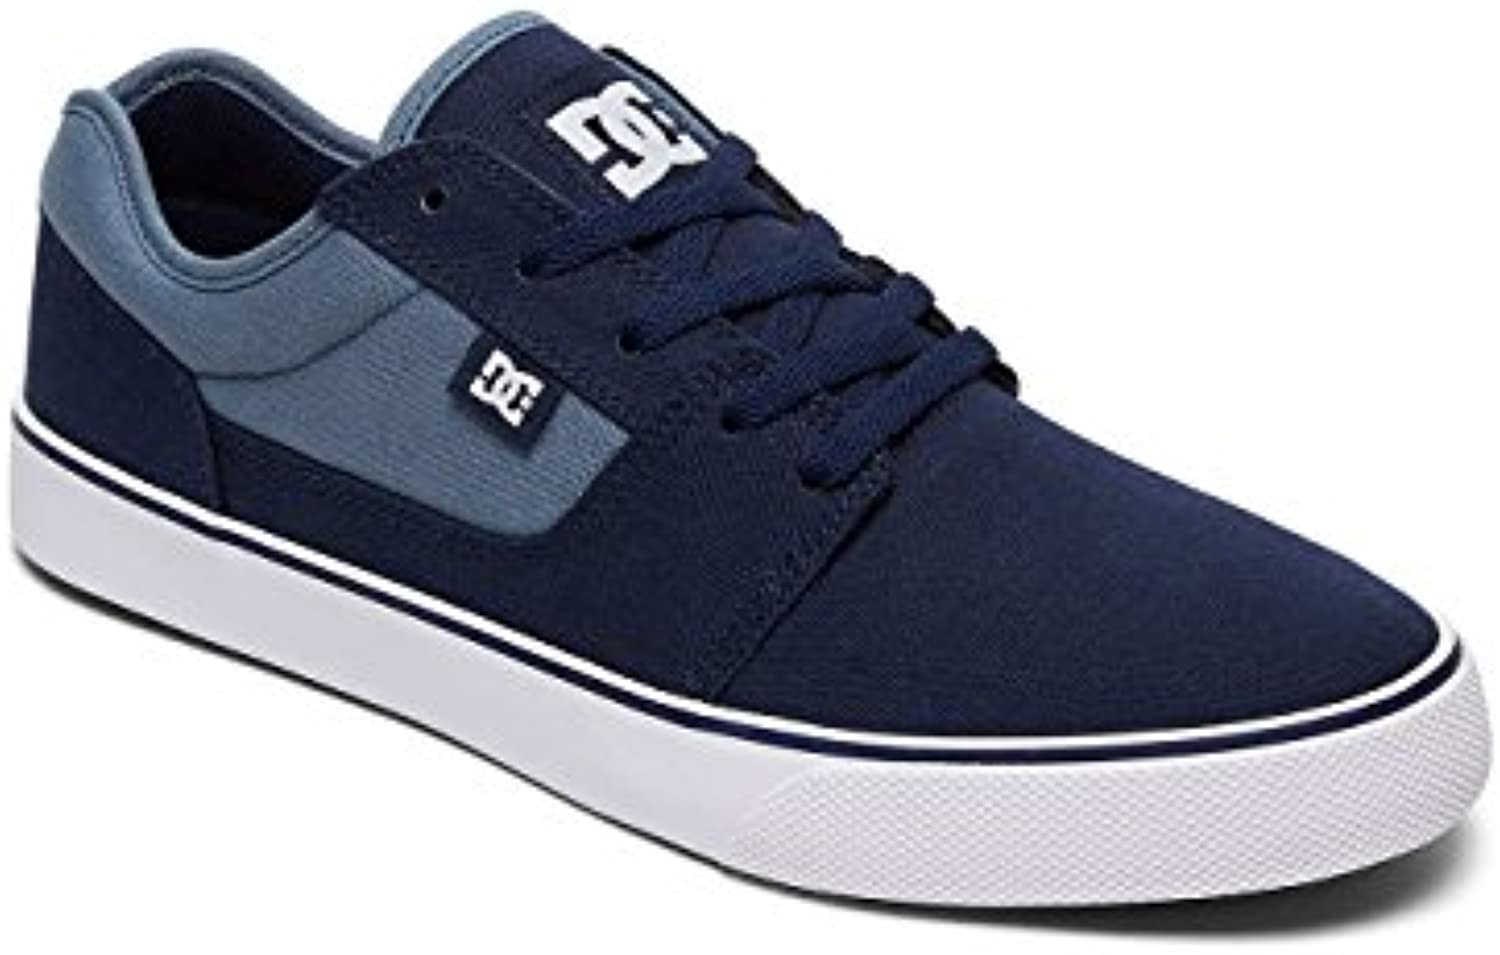 DC Shoes Tonik TX - Shoes - Zapatillas - Hombre - EU 43